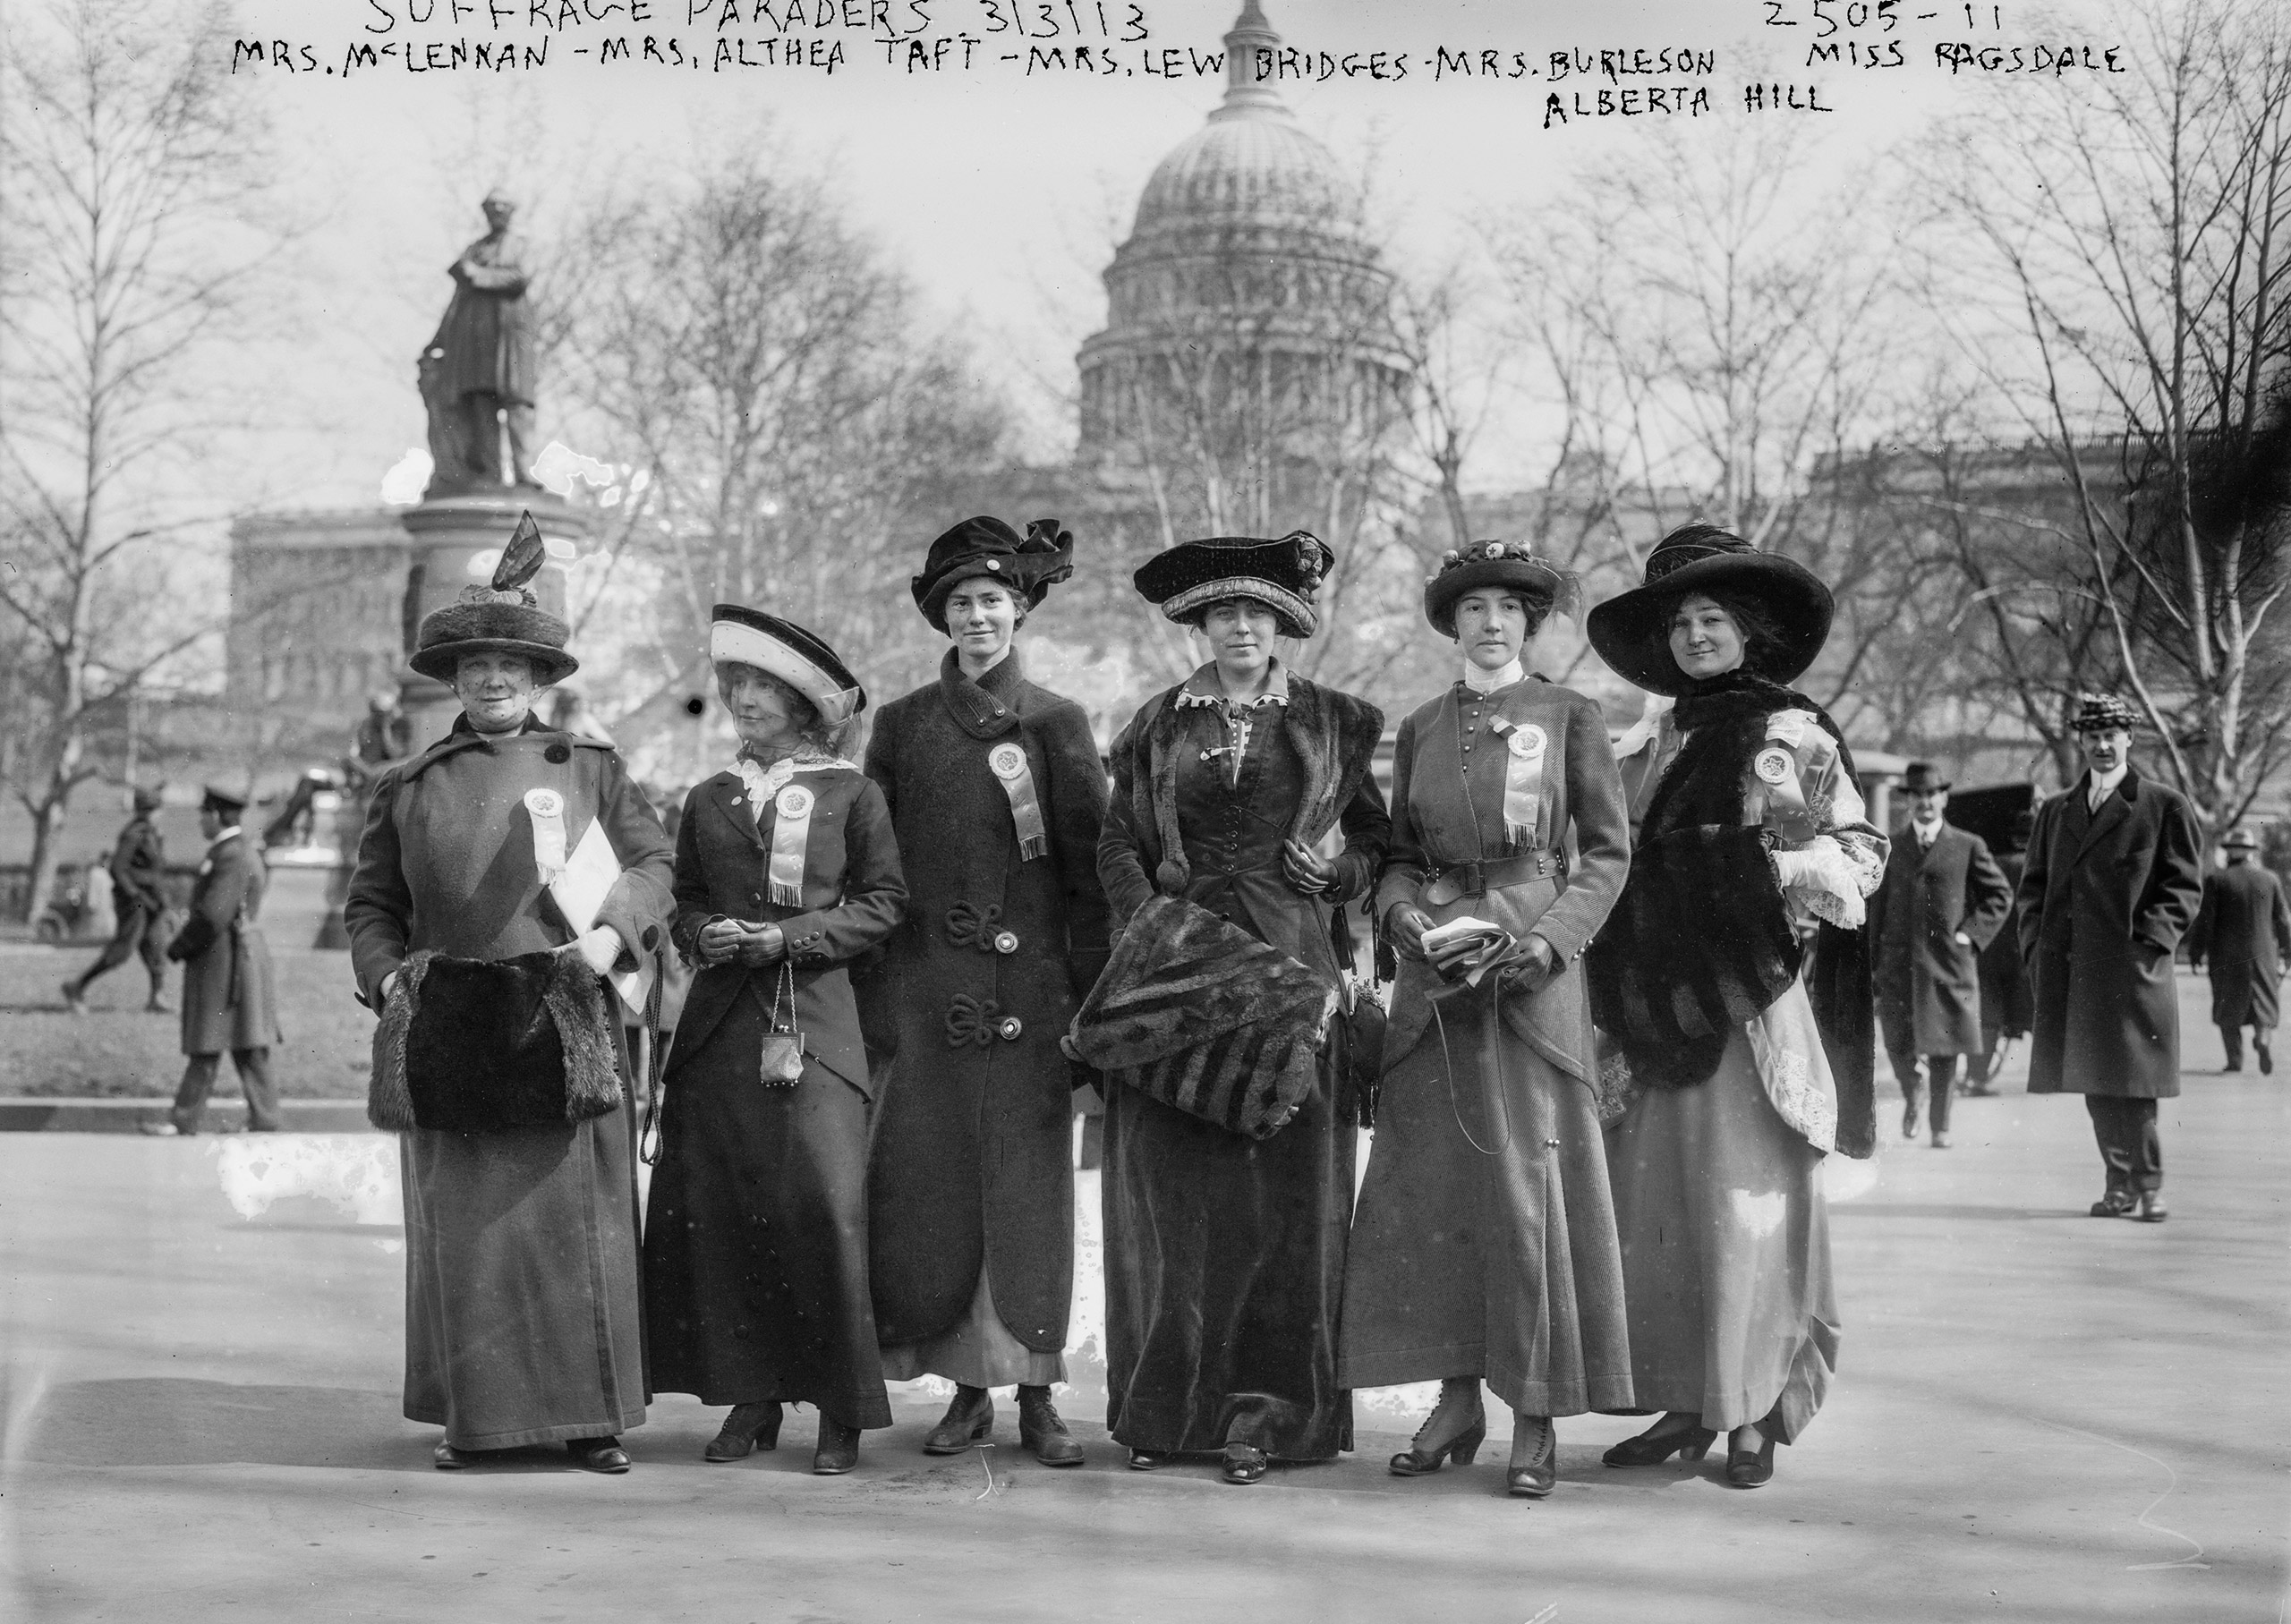 National American Woman Suffrage Association parade held in Washington, D.C., Mar. 3, 1913 showing (left to right) Mrs. Russell McLennan, Mrs. Althea Taft, Mrs. Lew Bridges, Mrs. Richard Coke Burleson, Alberta Hill and Miss F. Ragsdale.